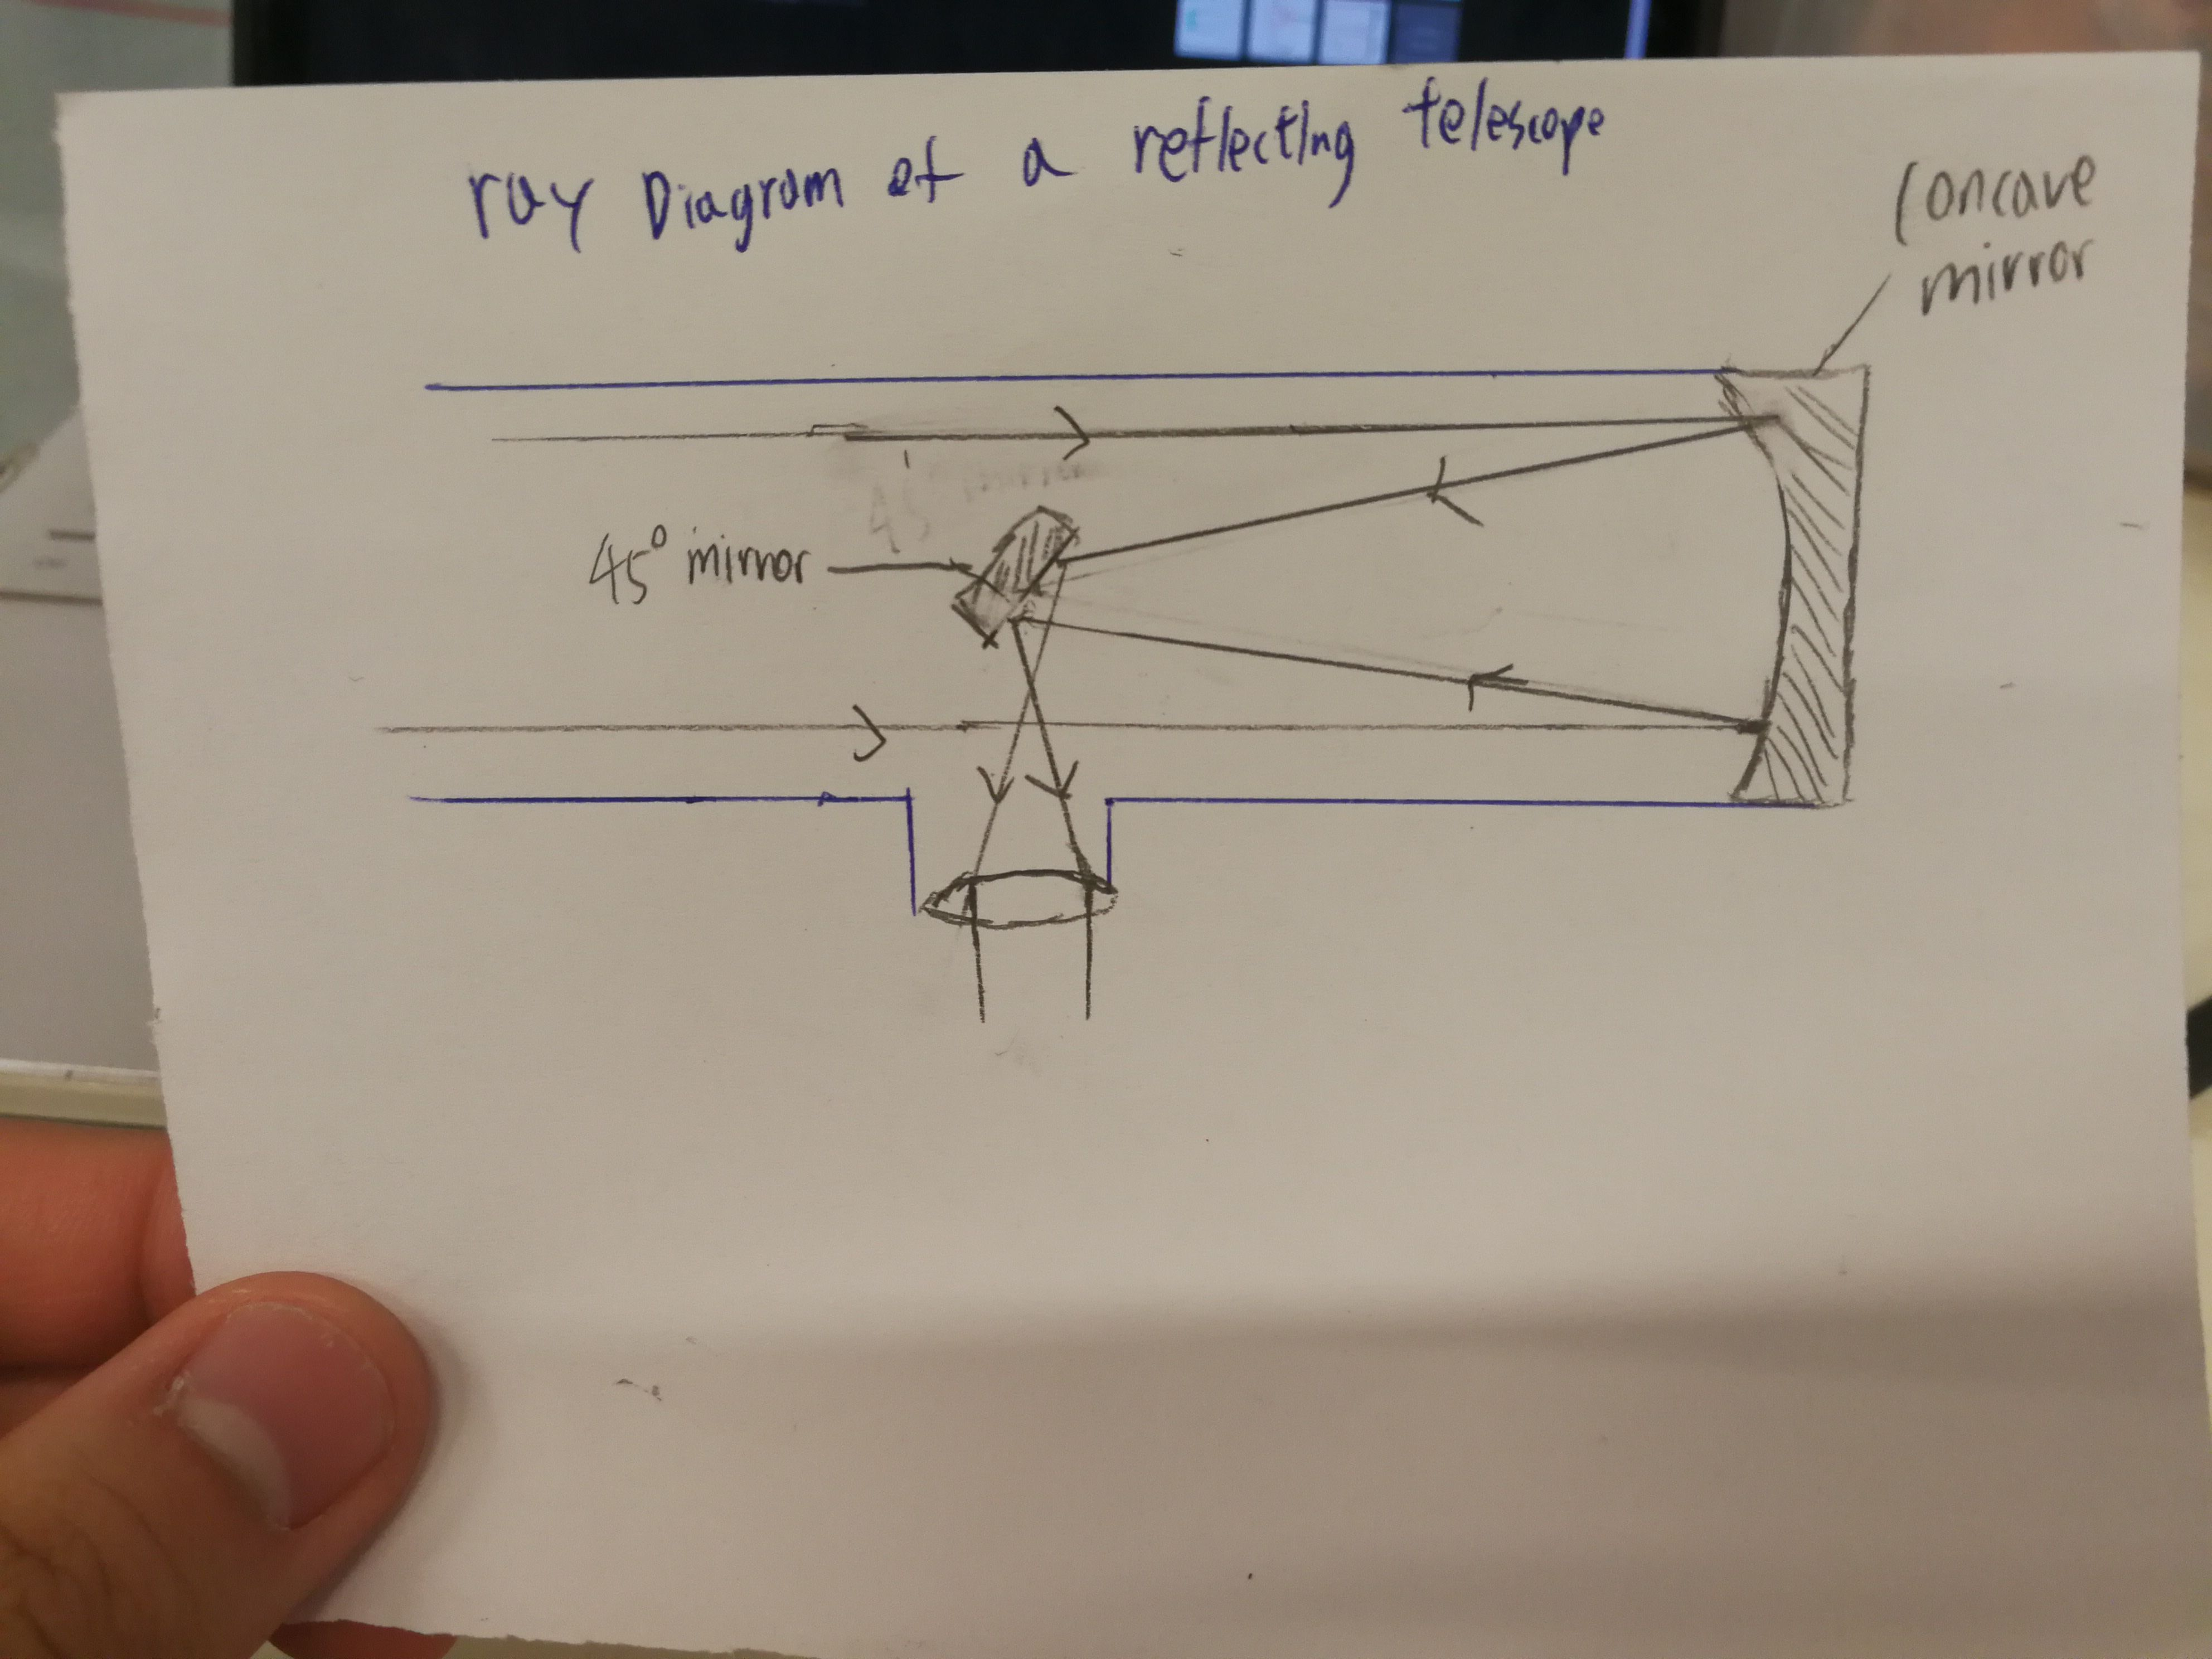 In this hand drawn diagram it shows how a reflecting telescope